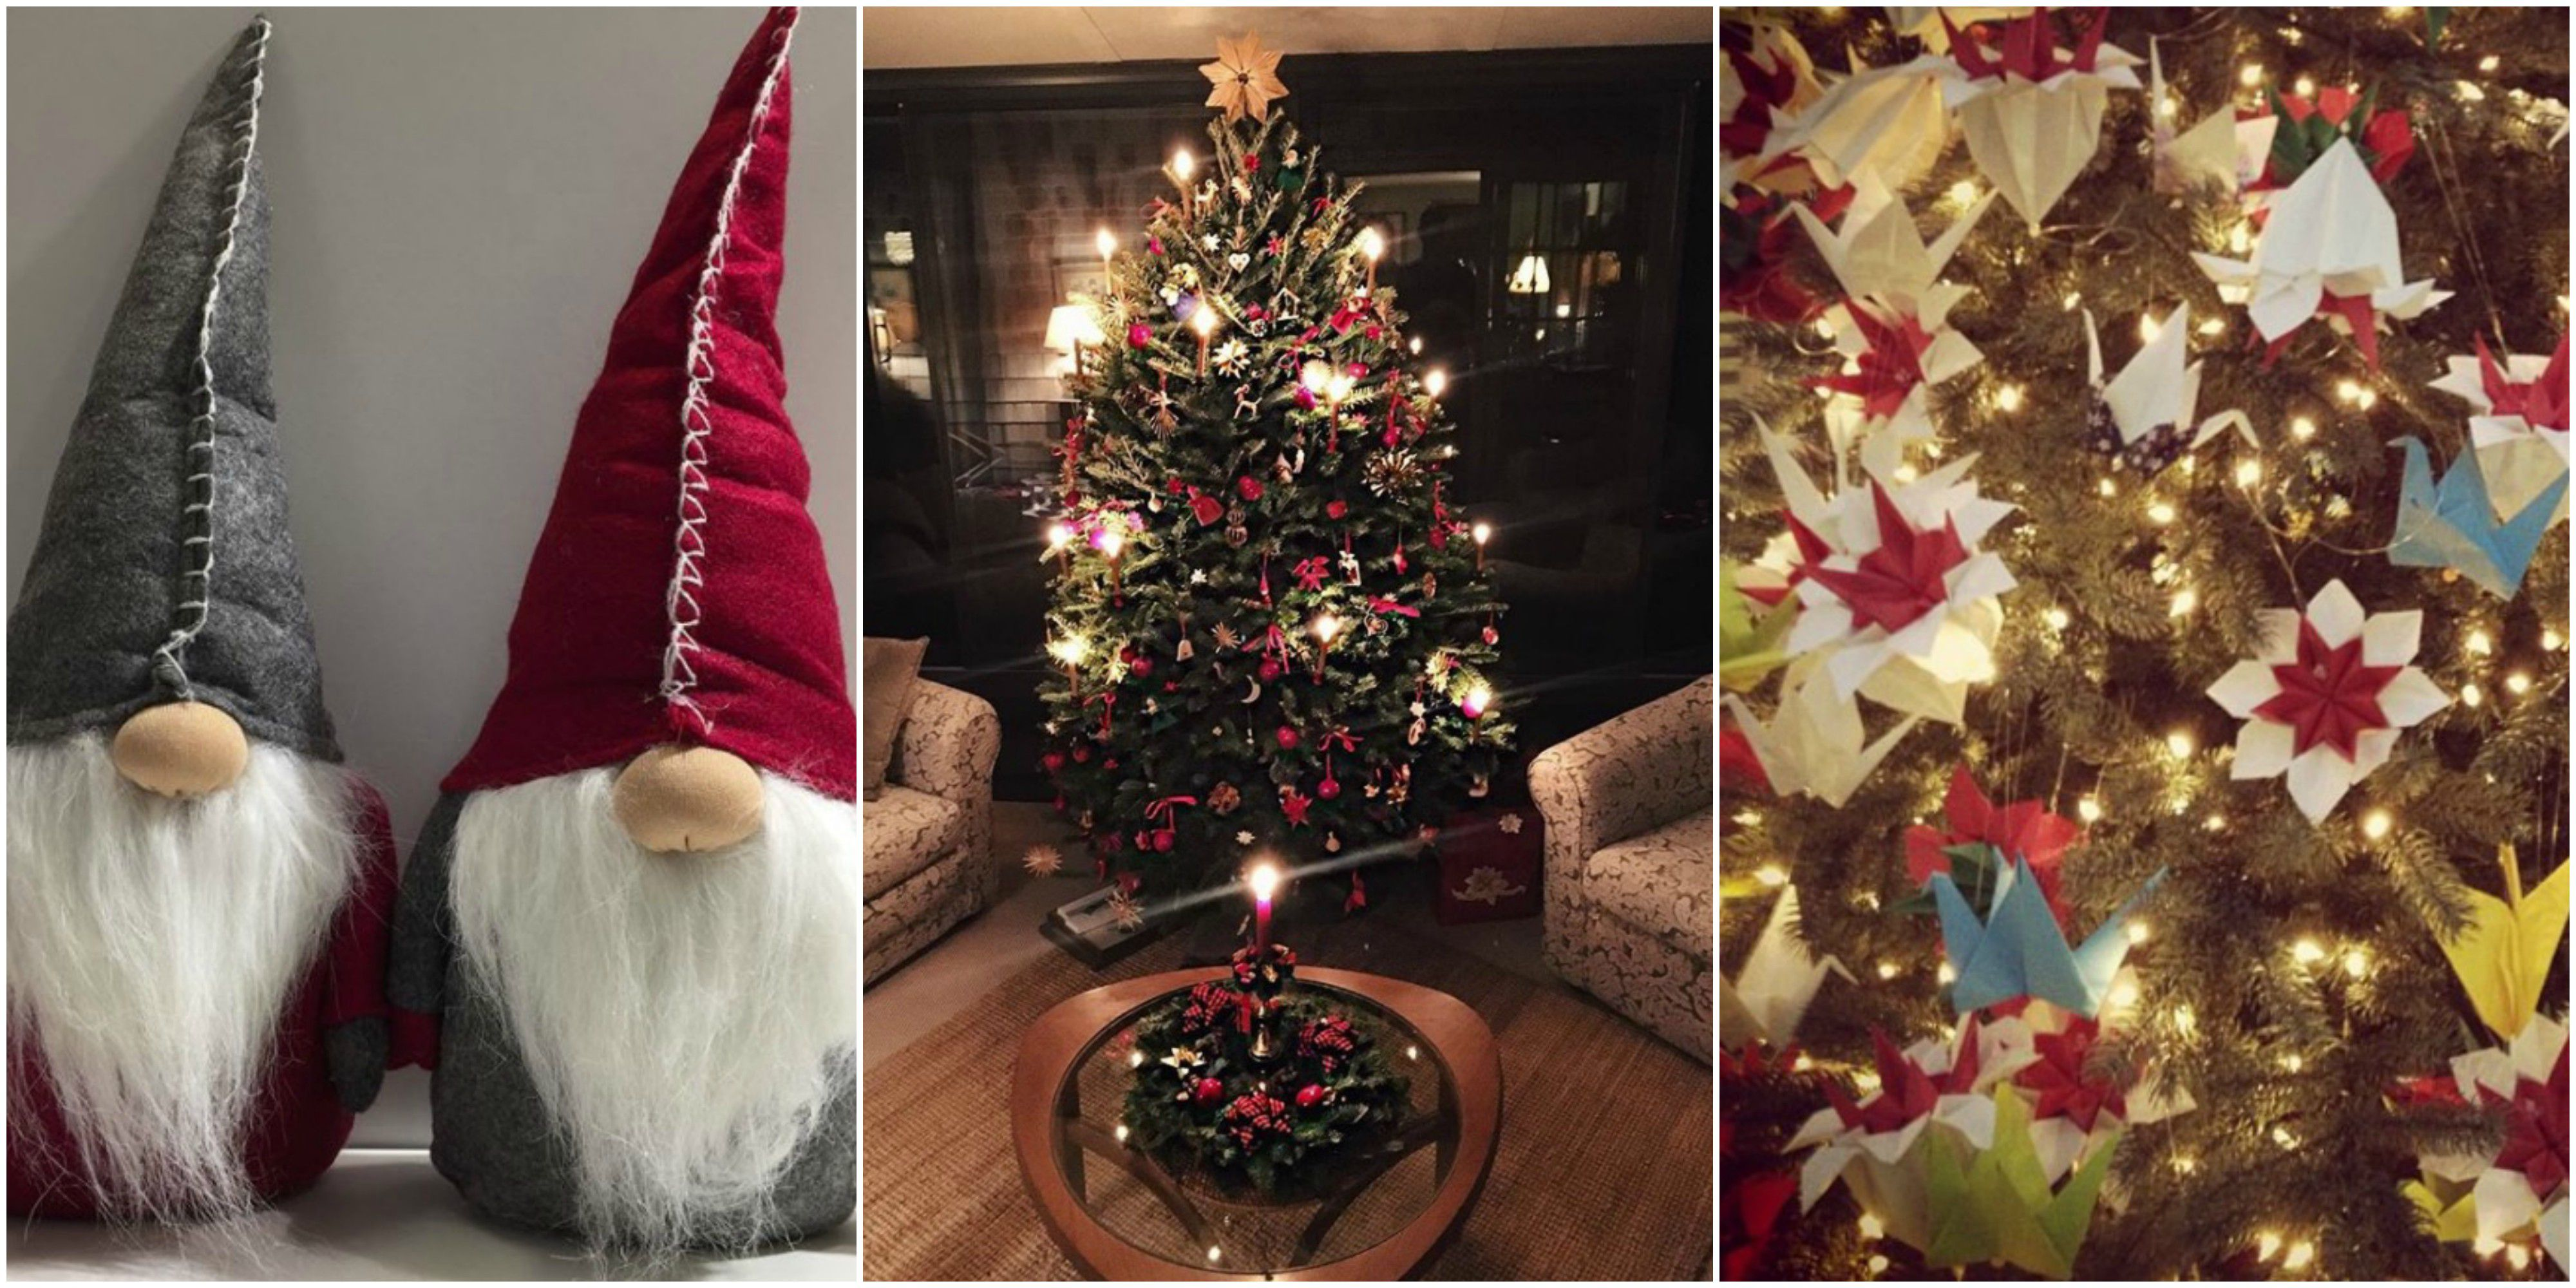 12 Different Ways Christmas Trees Are Decorated Around The World ...